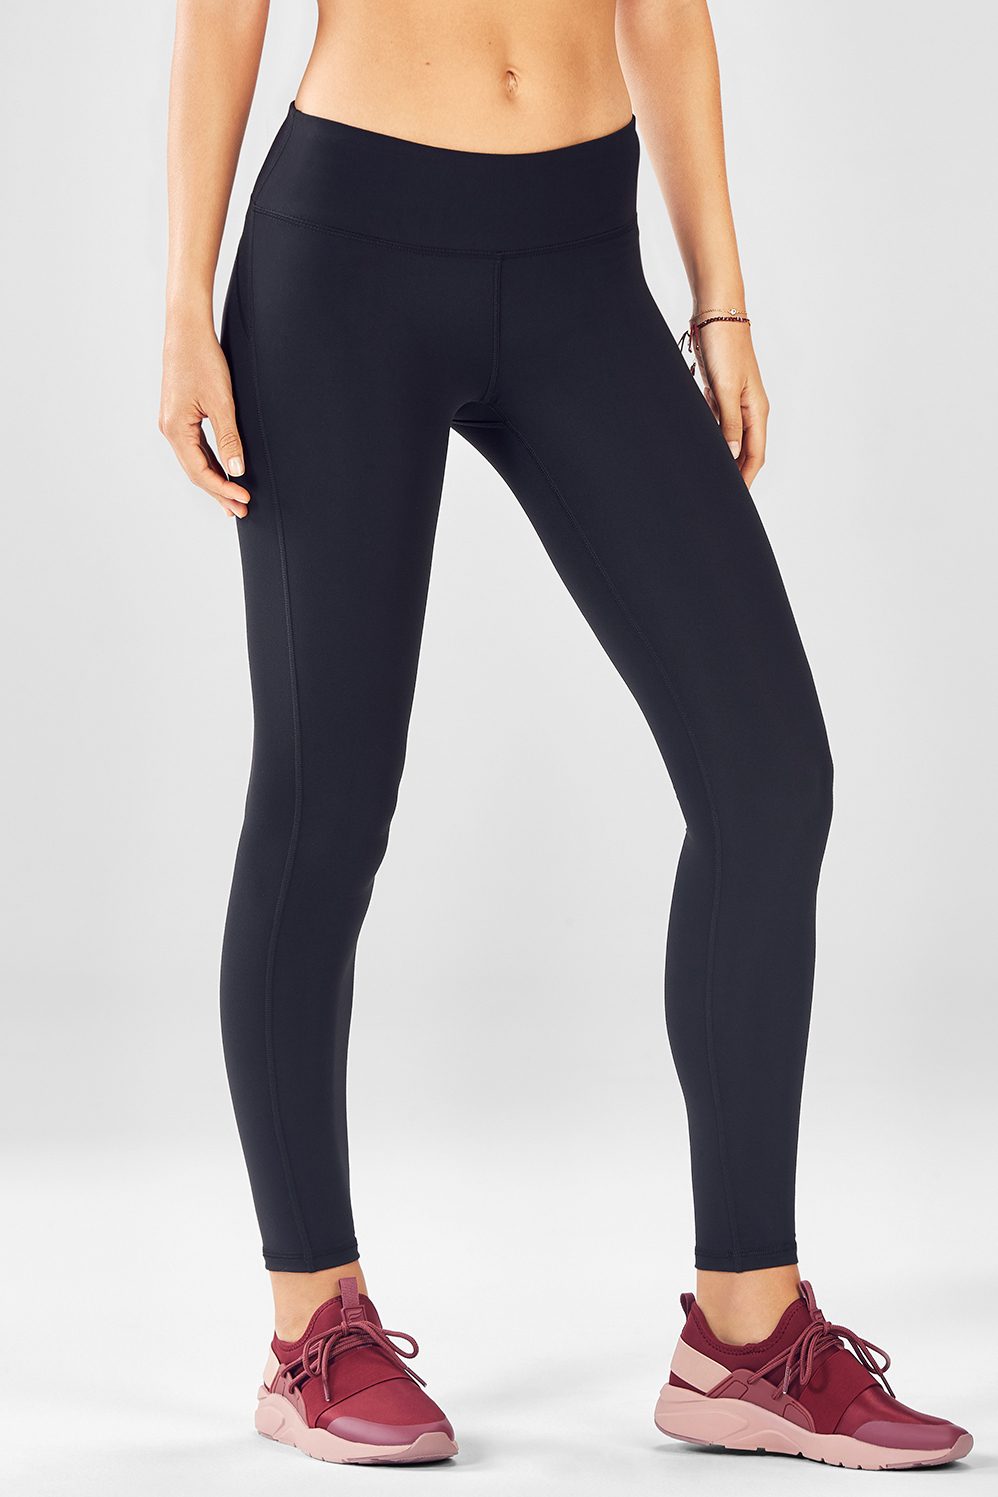 select for clearance variety styles of 2019 professional Mid-Rise Pureluxe Legging